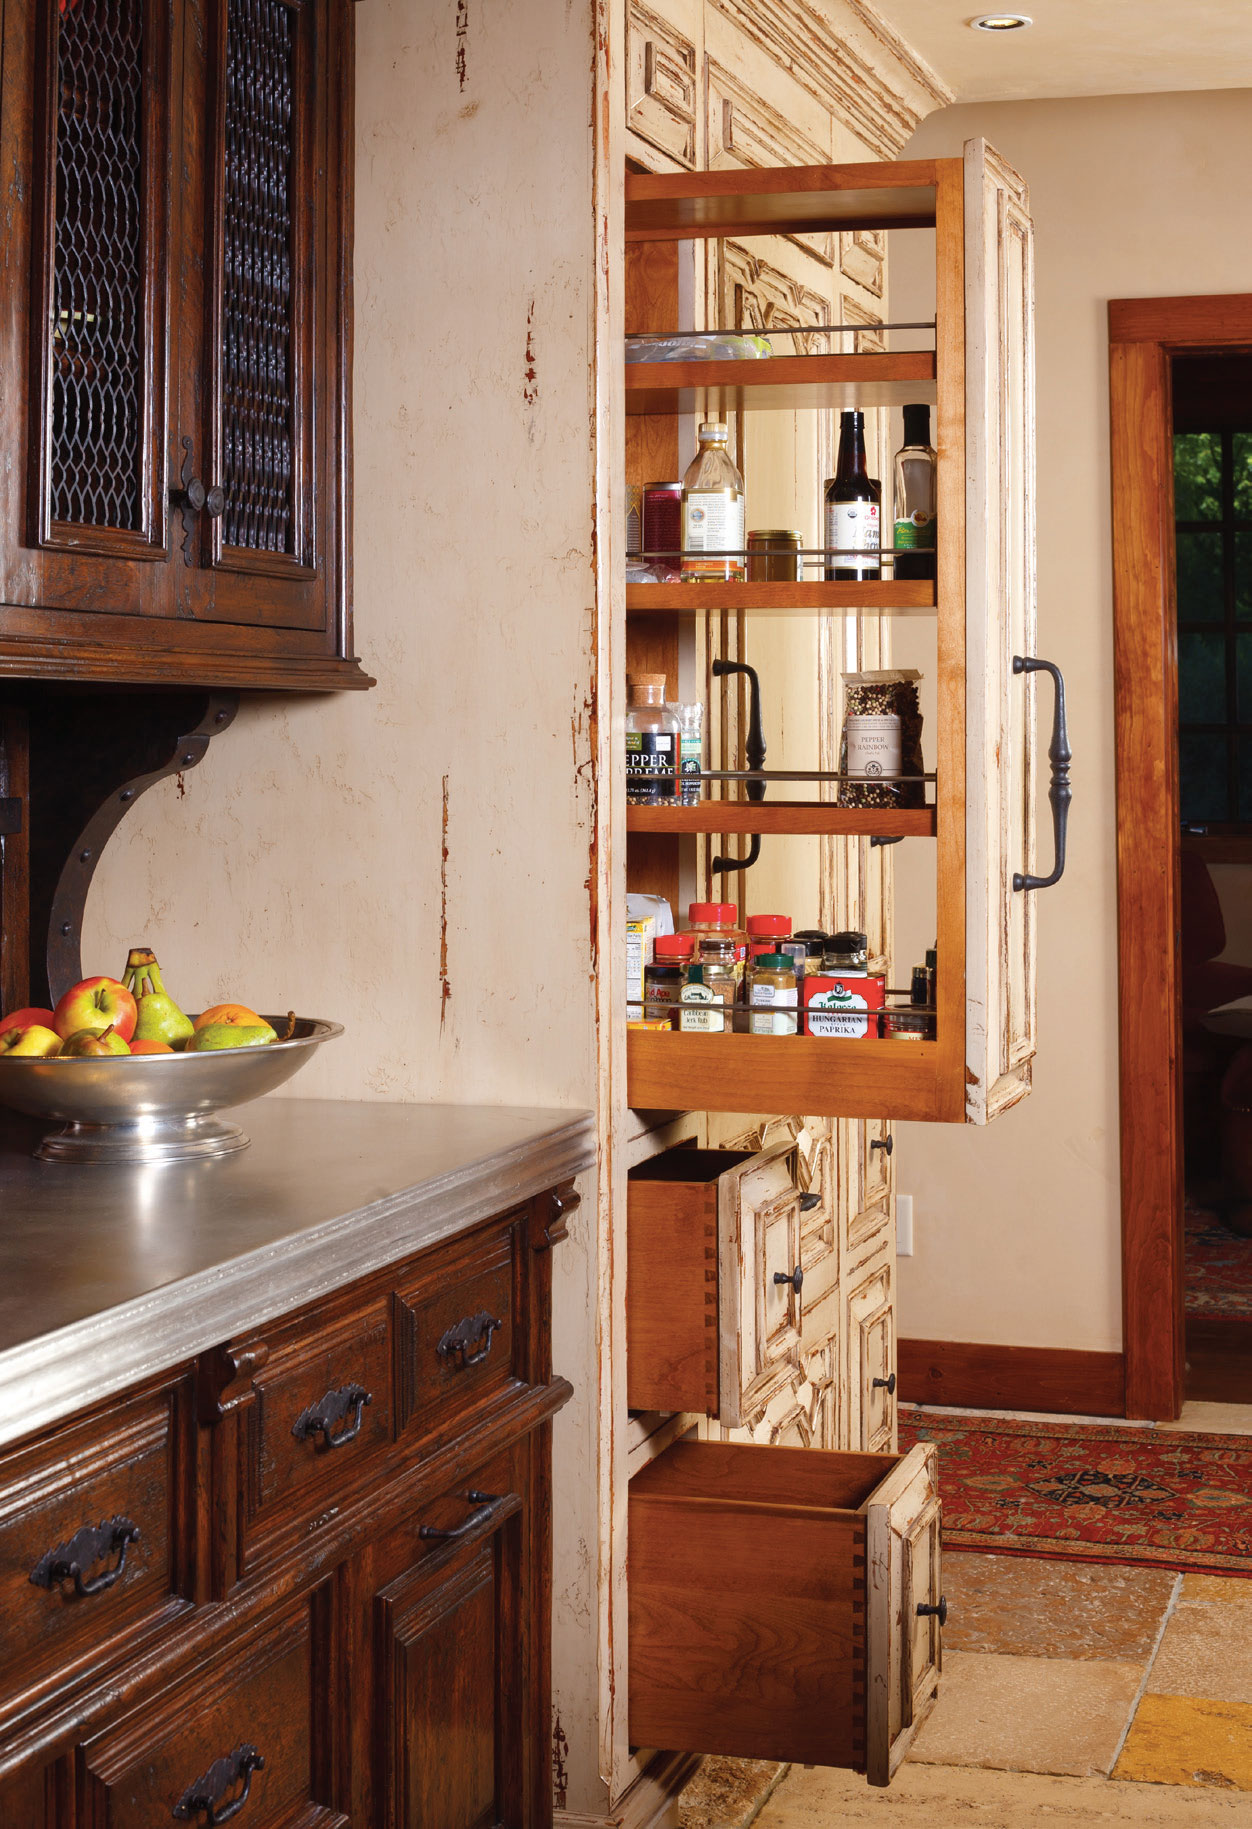 Cabinet couture western home journal luxury mountain Western kitchen cabinets